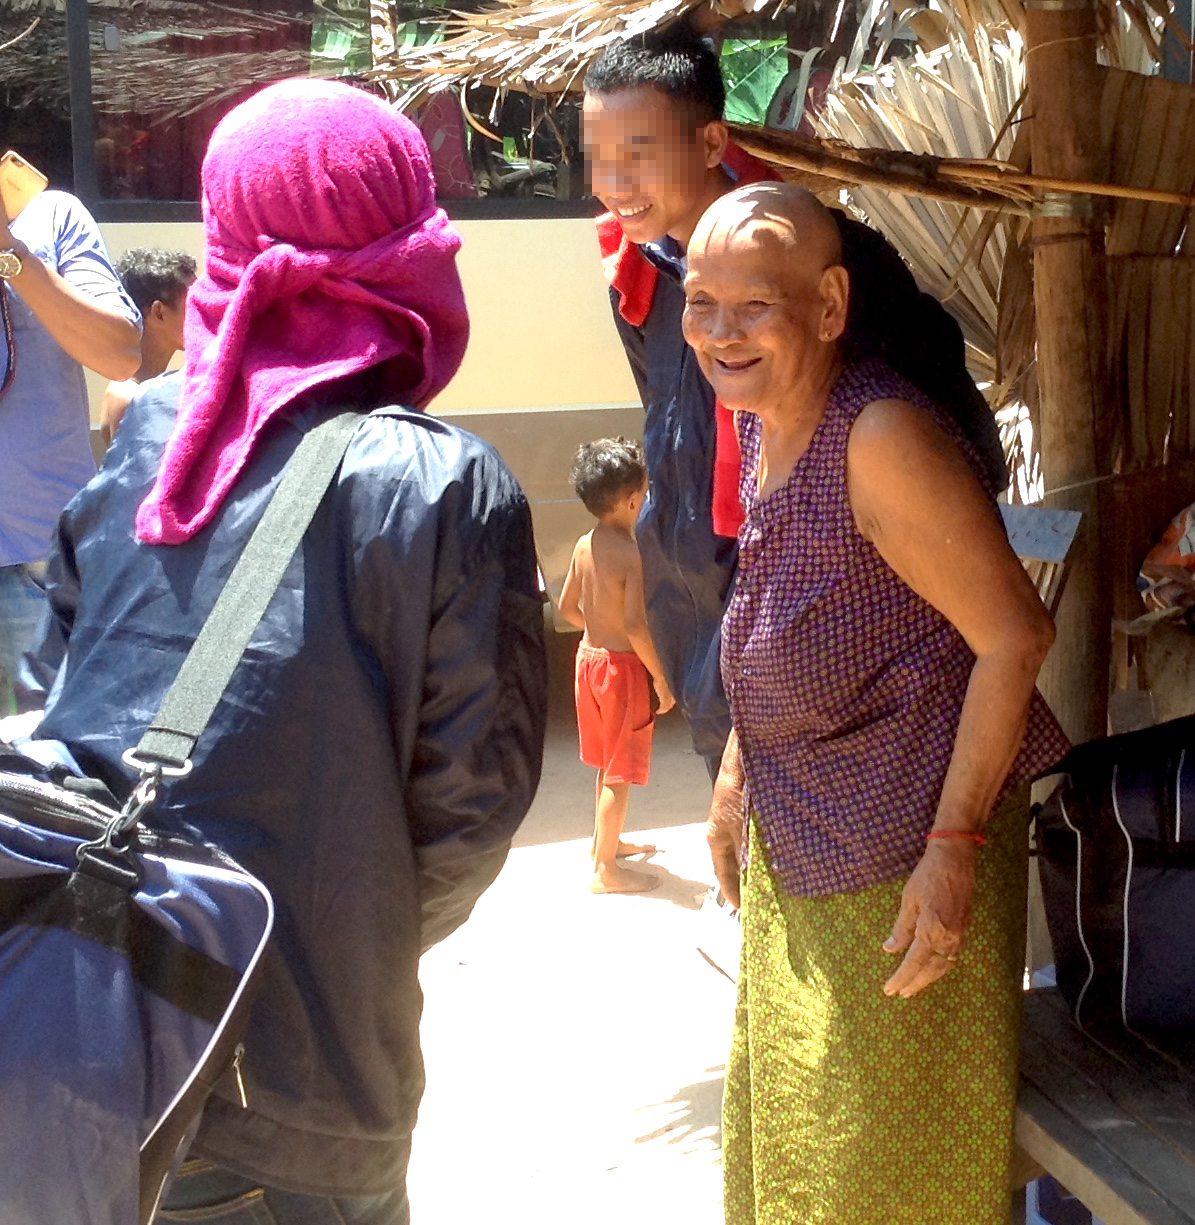 After months at sea, a trafficked fisherman is welcomed home by his grandmother and other family.